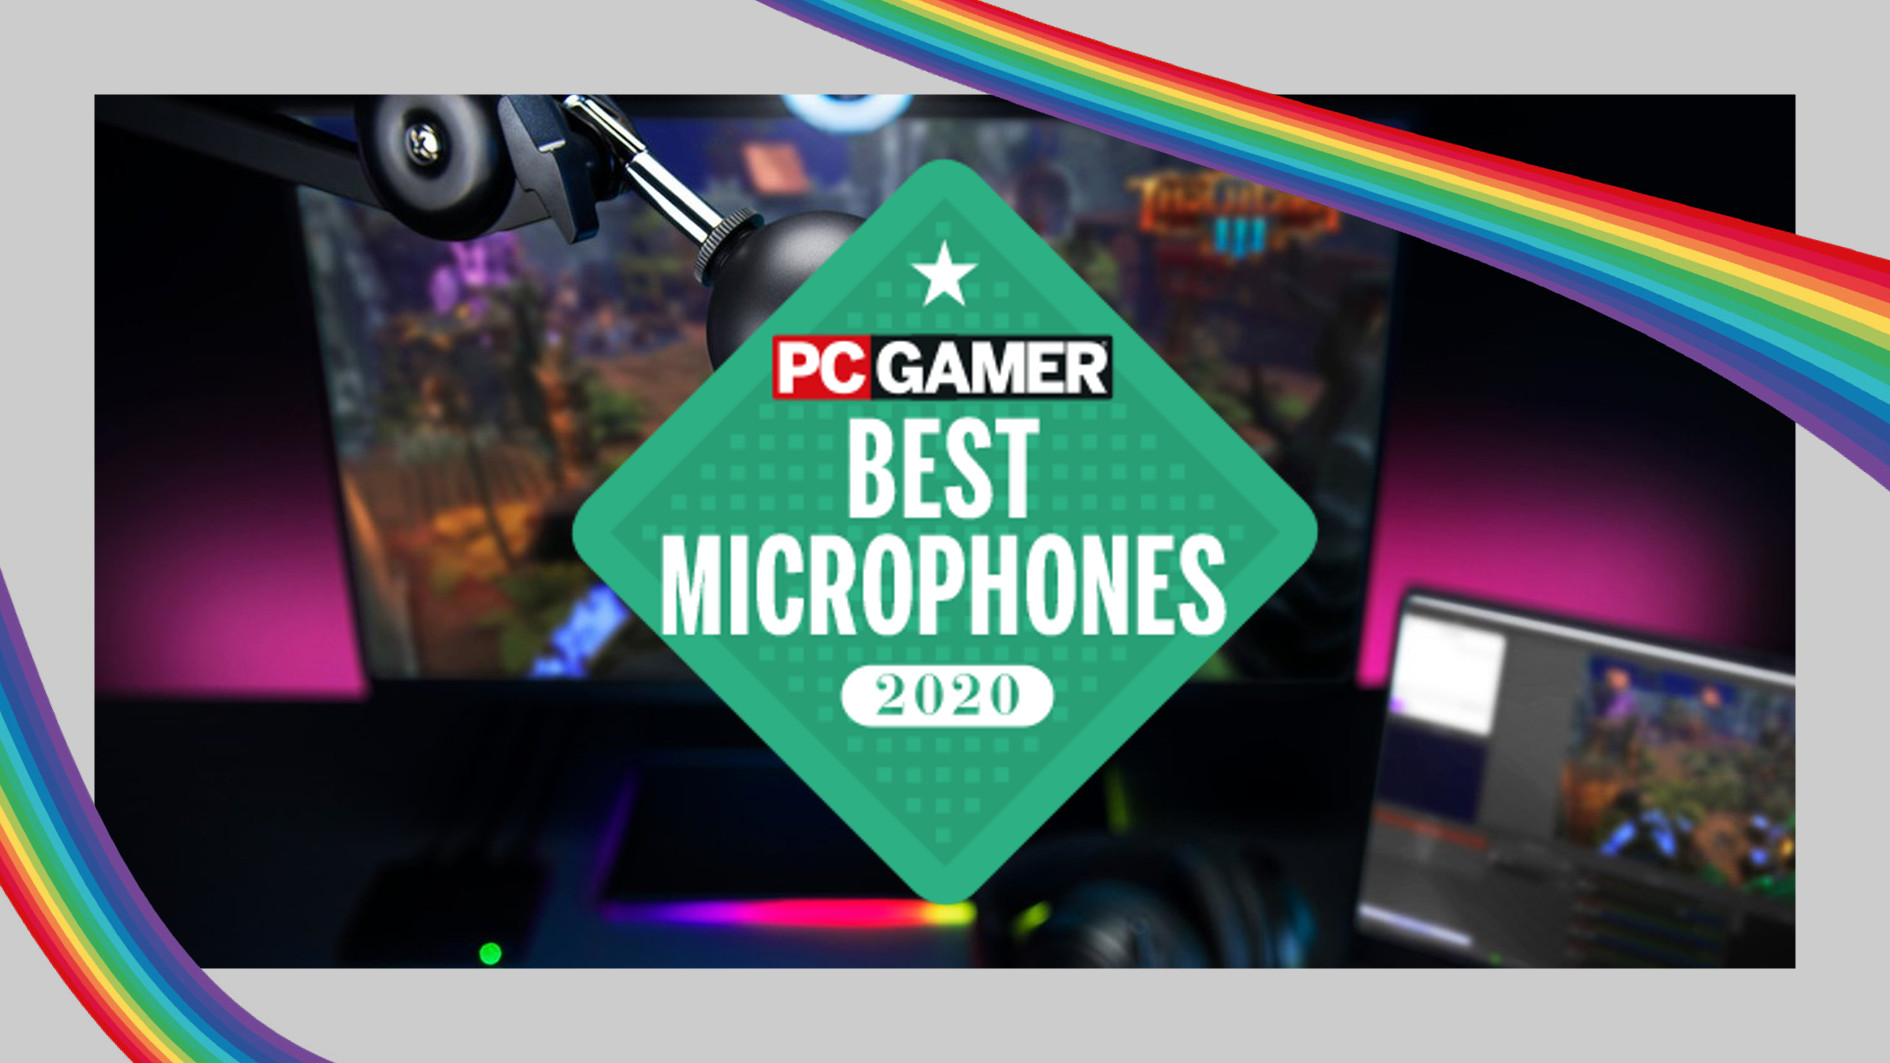 PC Gamer Hardware Awards: What is the best microphone of 2020?